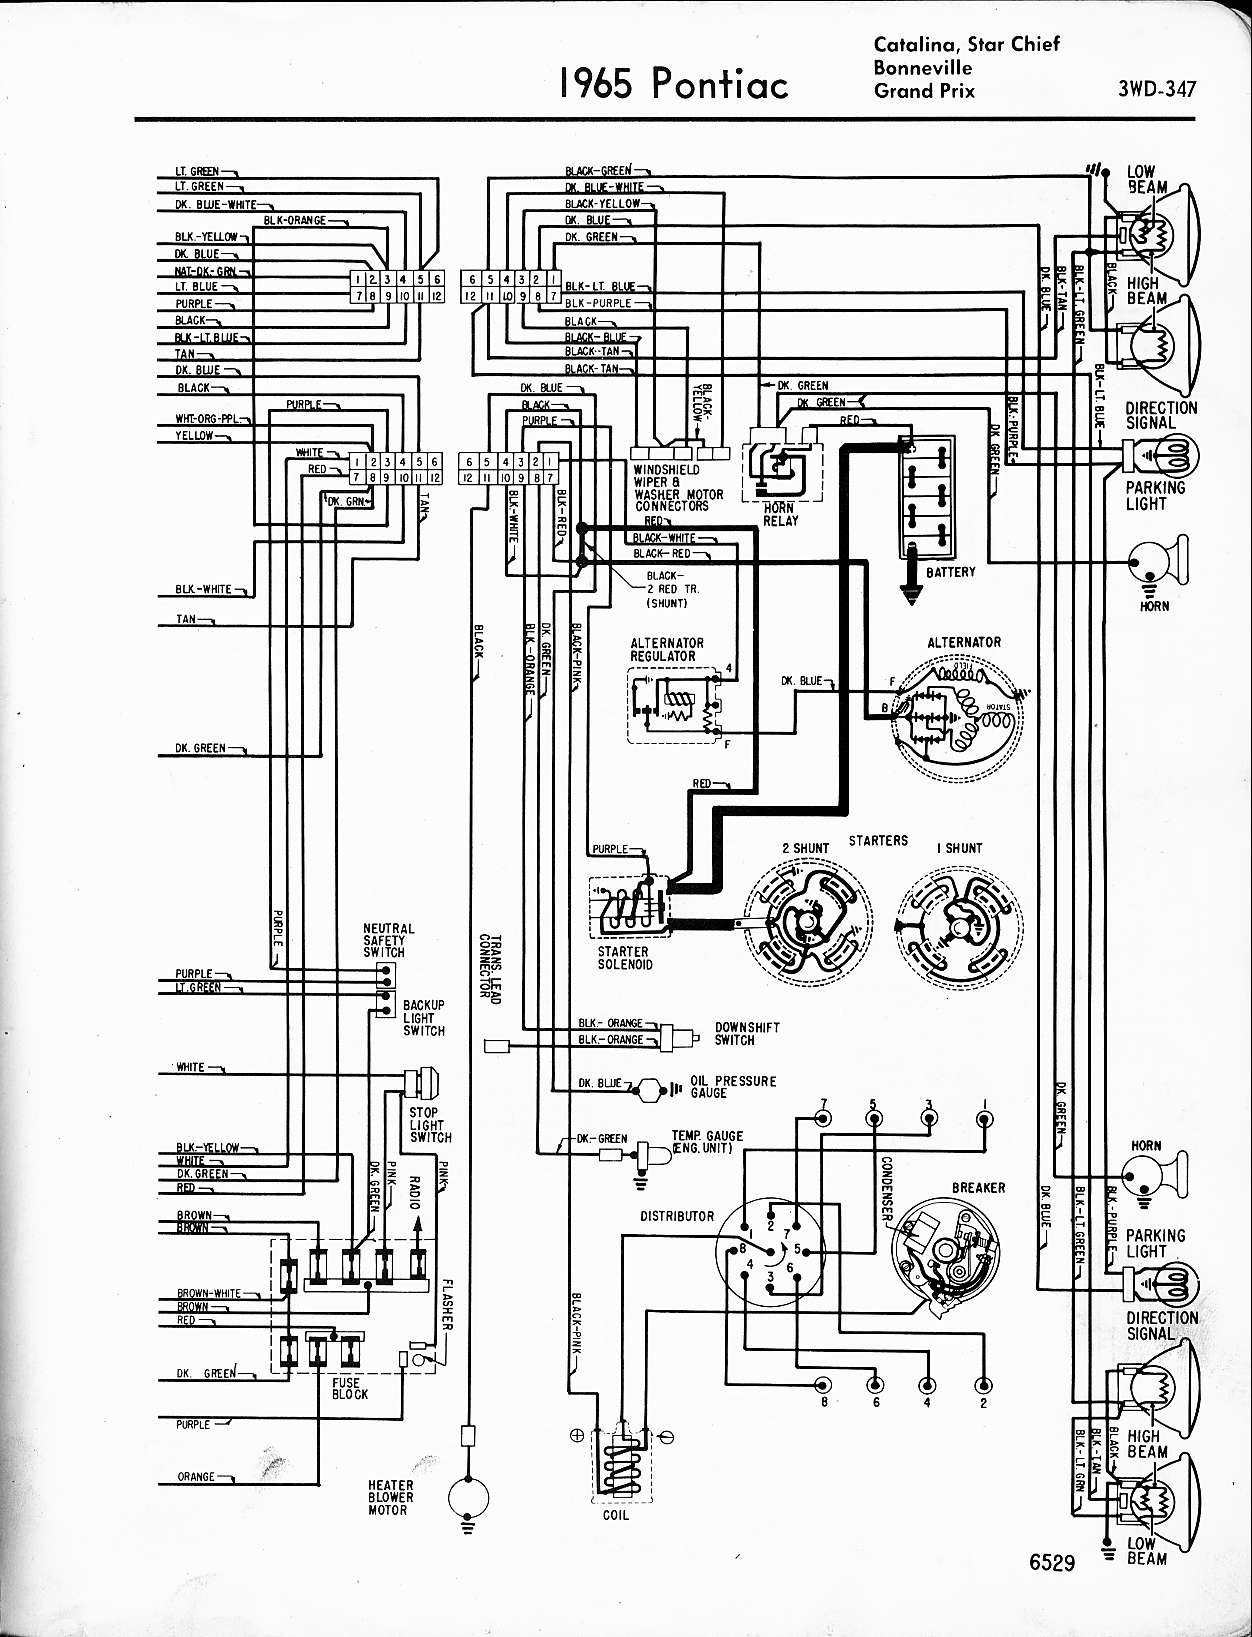 Strange Pontiac Vacuum Diagram Wiring Library Wiring Digital Resources Spoatbouhousnl